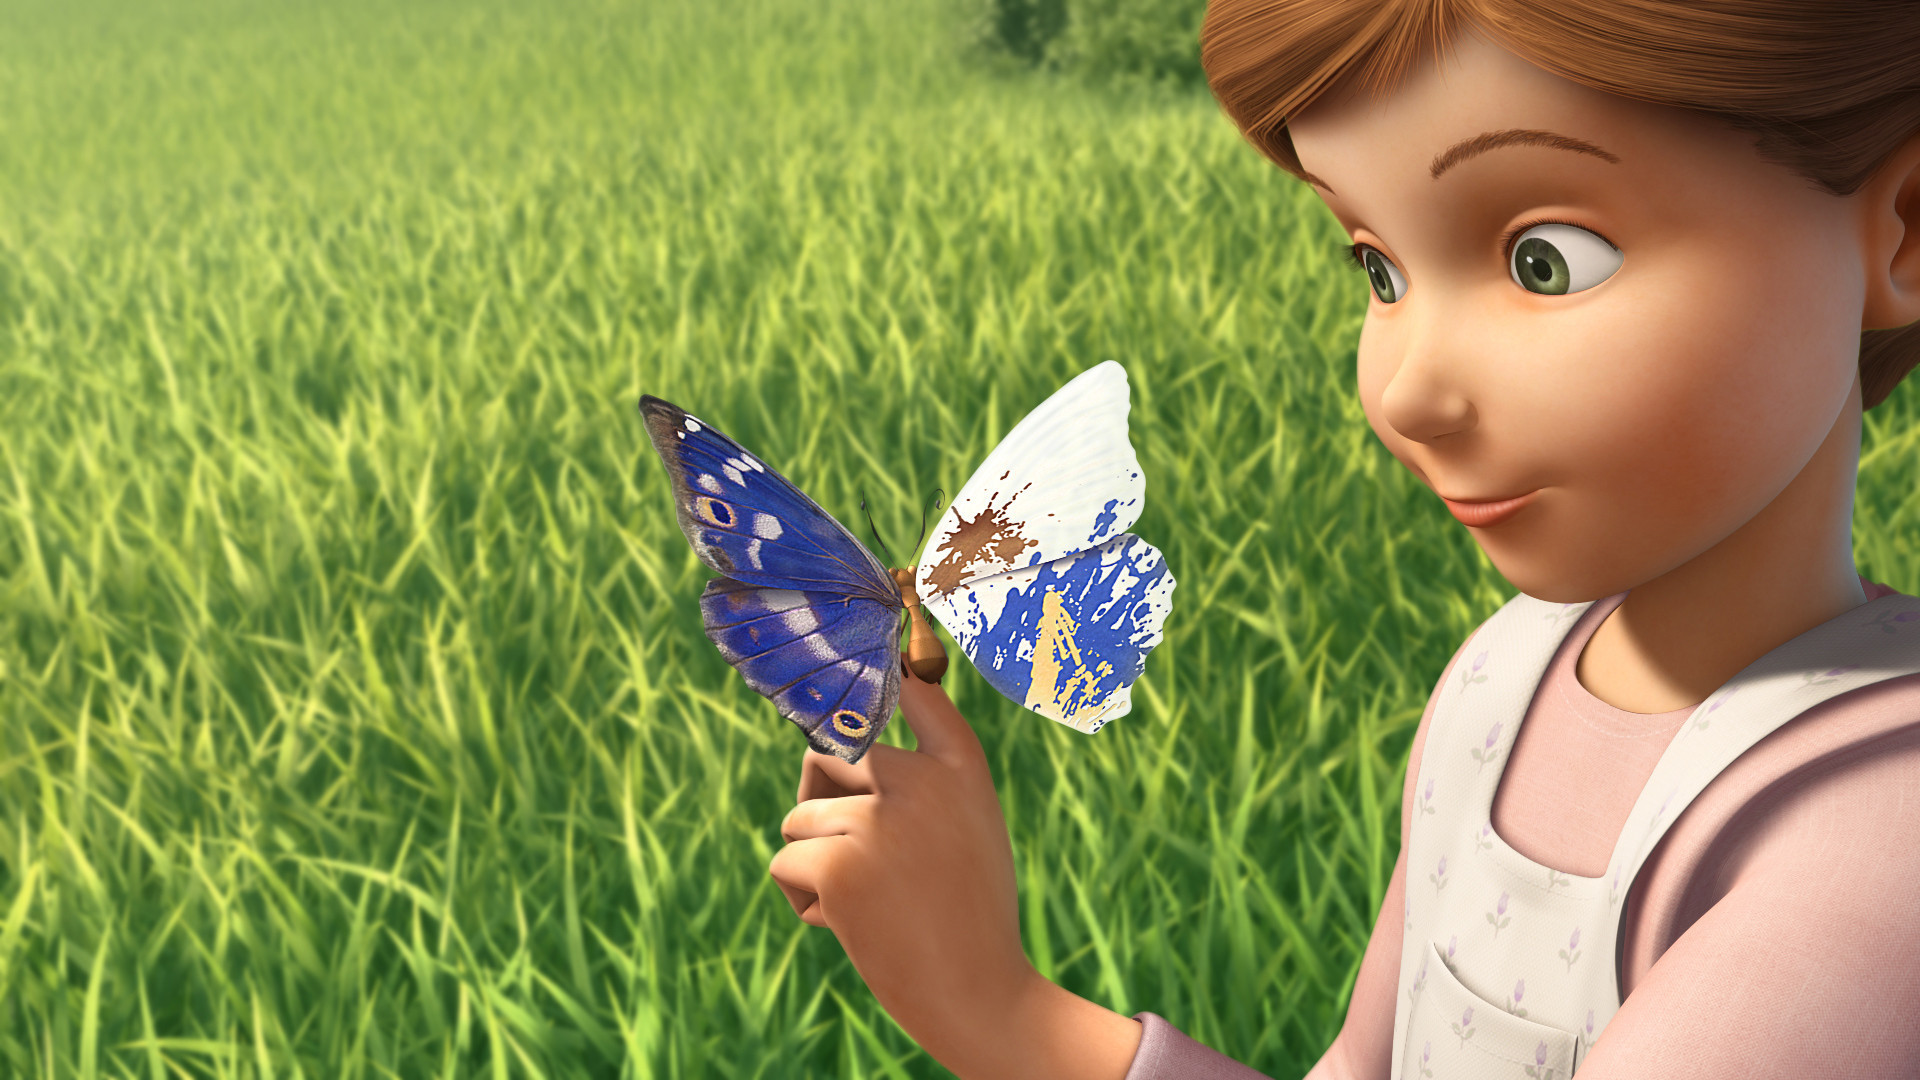 1920x1080 Tinker Bell and the Great Fairy Rescue image